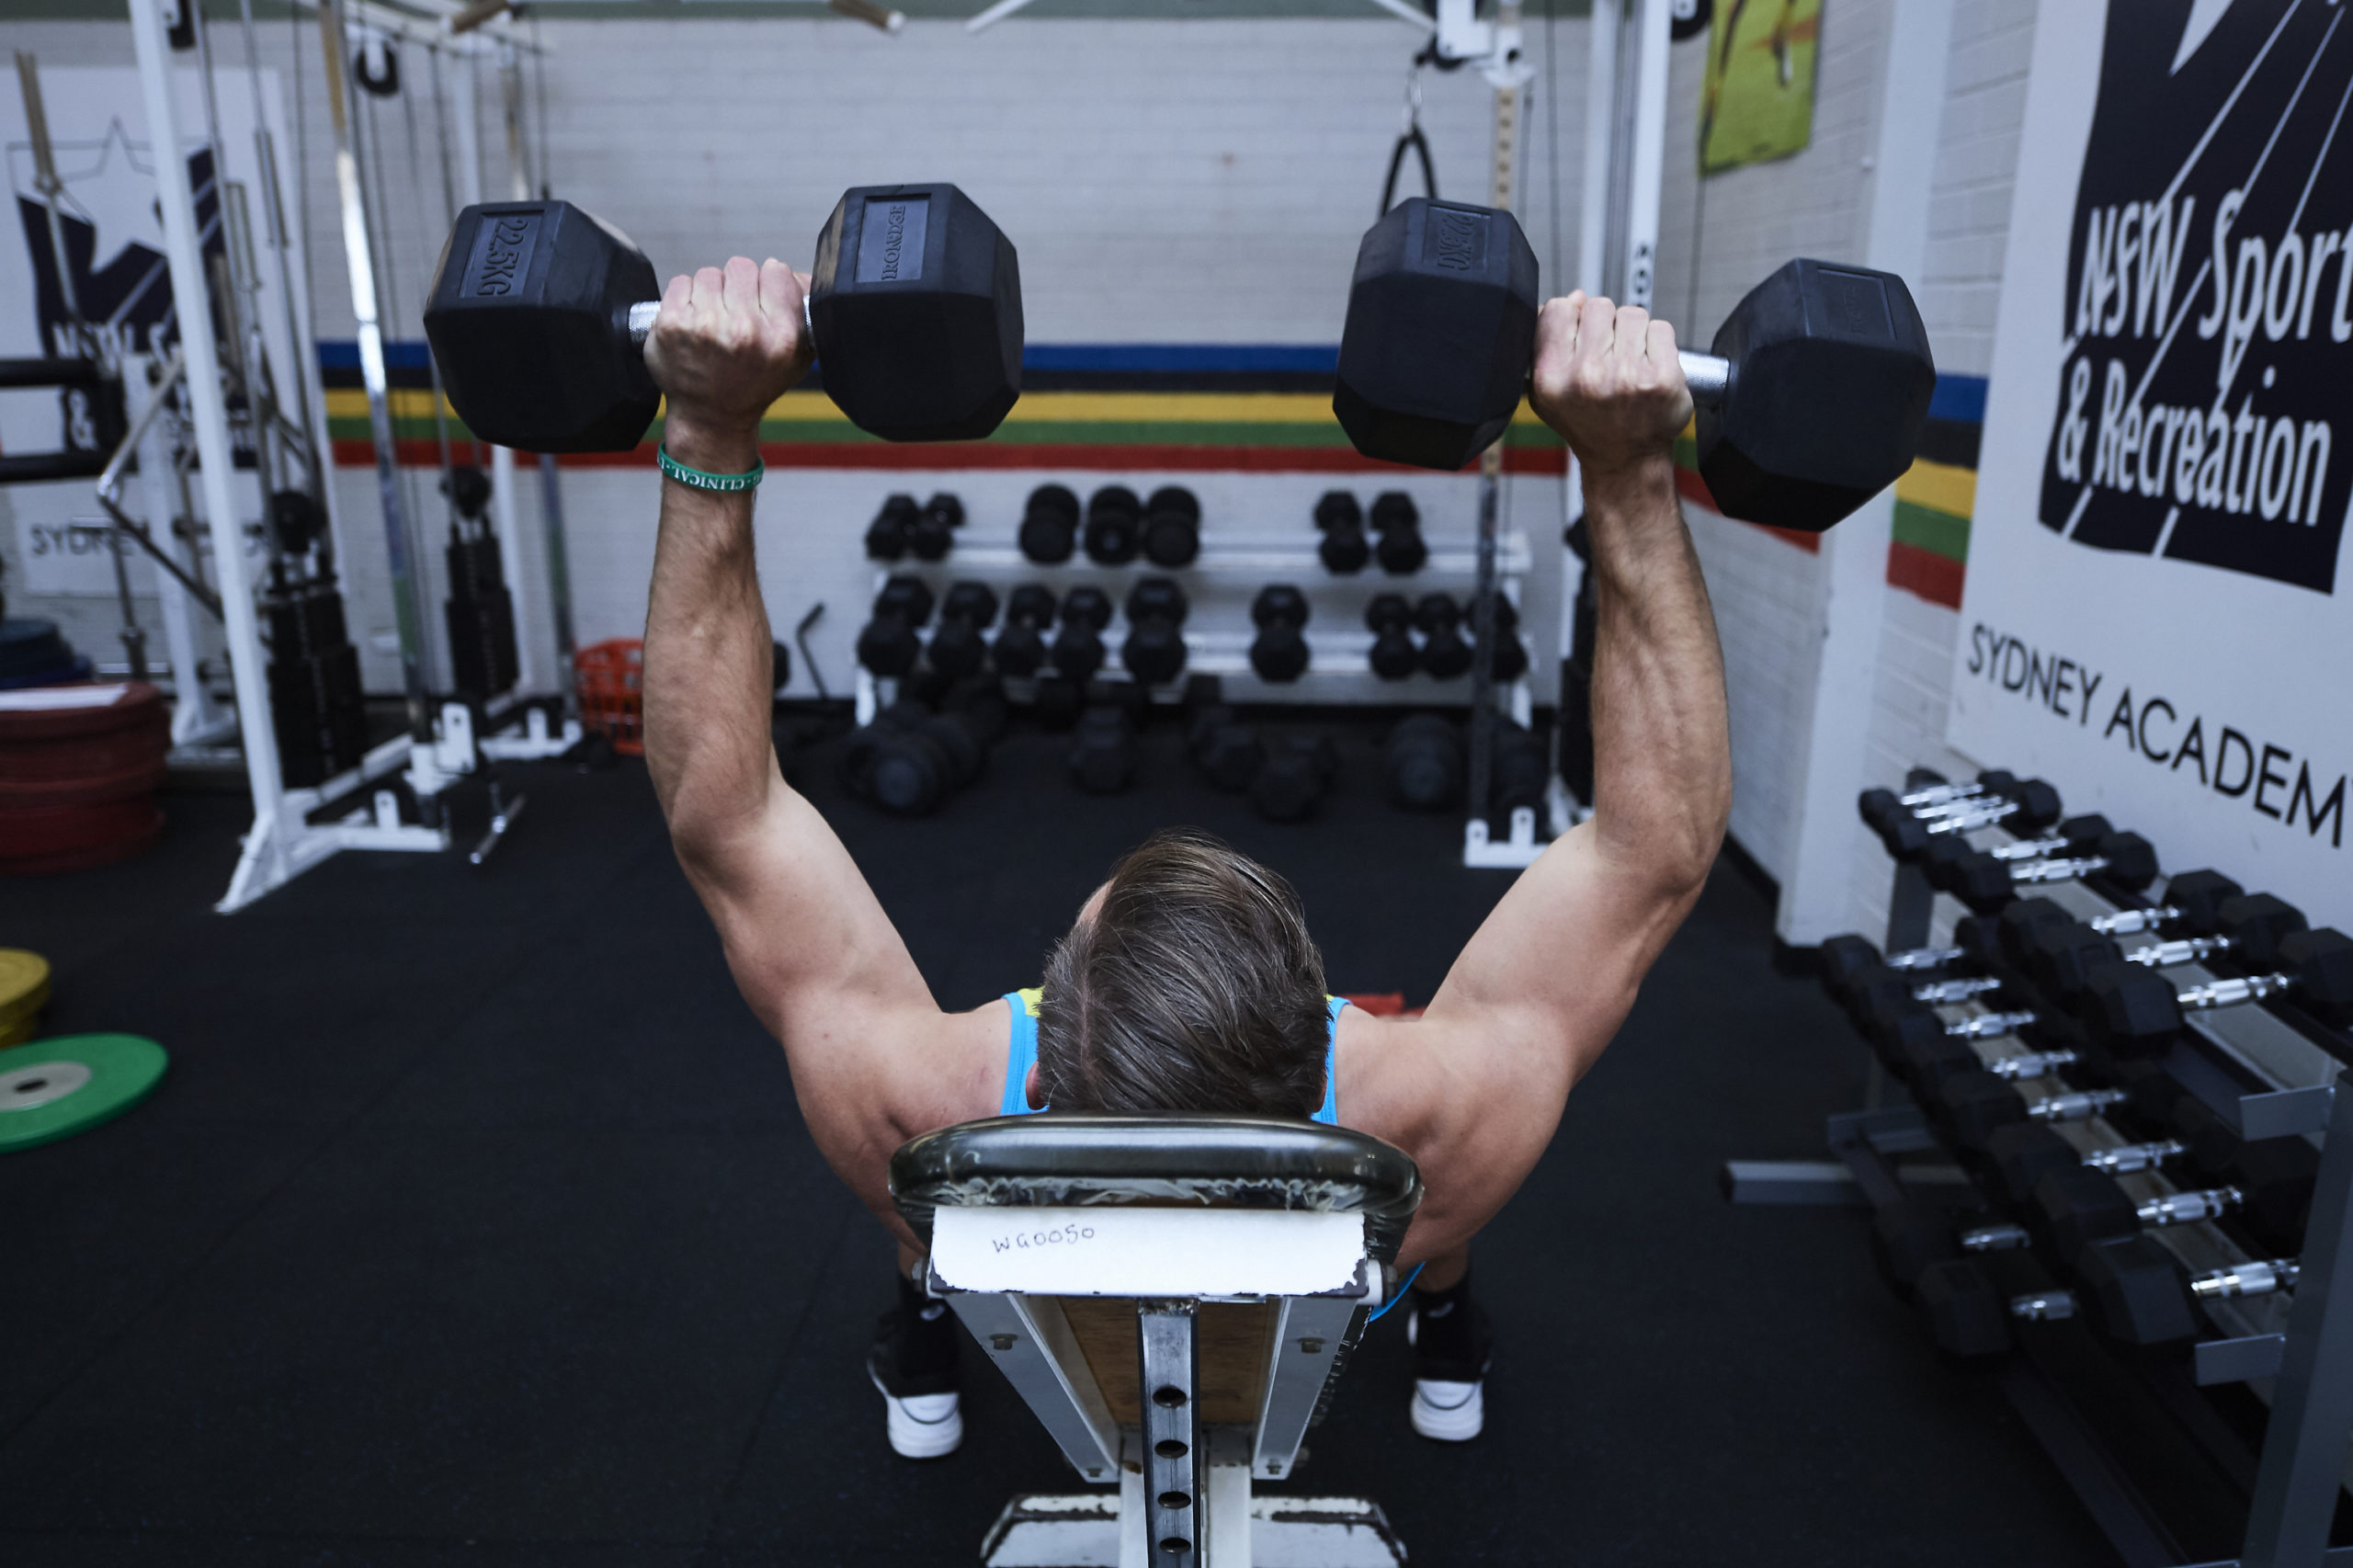 SYDNEY, AUSTRALIA - SEPTEMBER 20: Ed Jenkins of the Australian Rugby Sevens team works out in the gym during a training session on September 20, 2017 in Sydney, Australia. (Photo by Brett Hemmings/Getty Images)